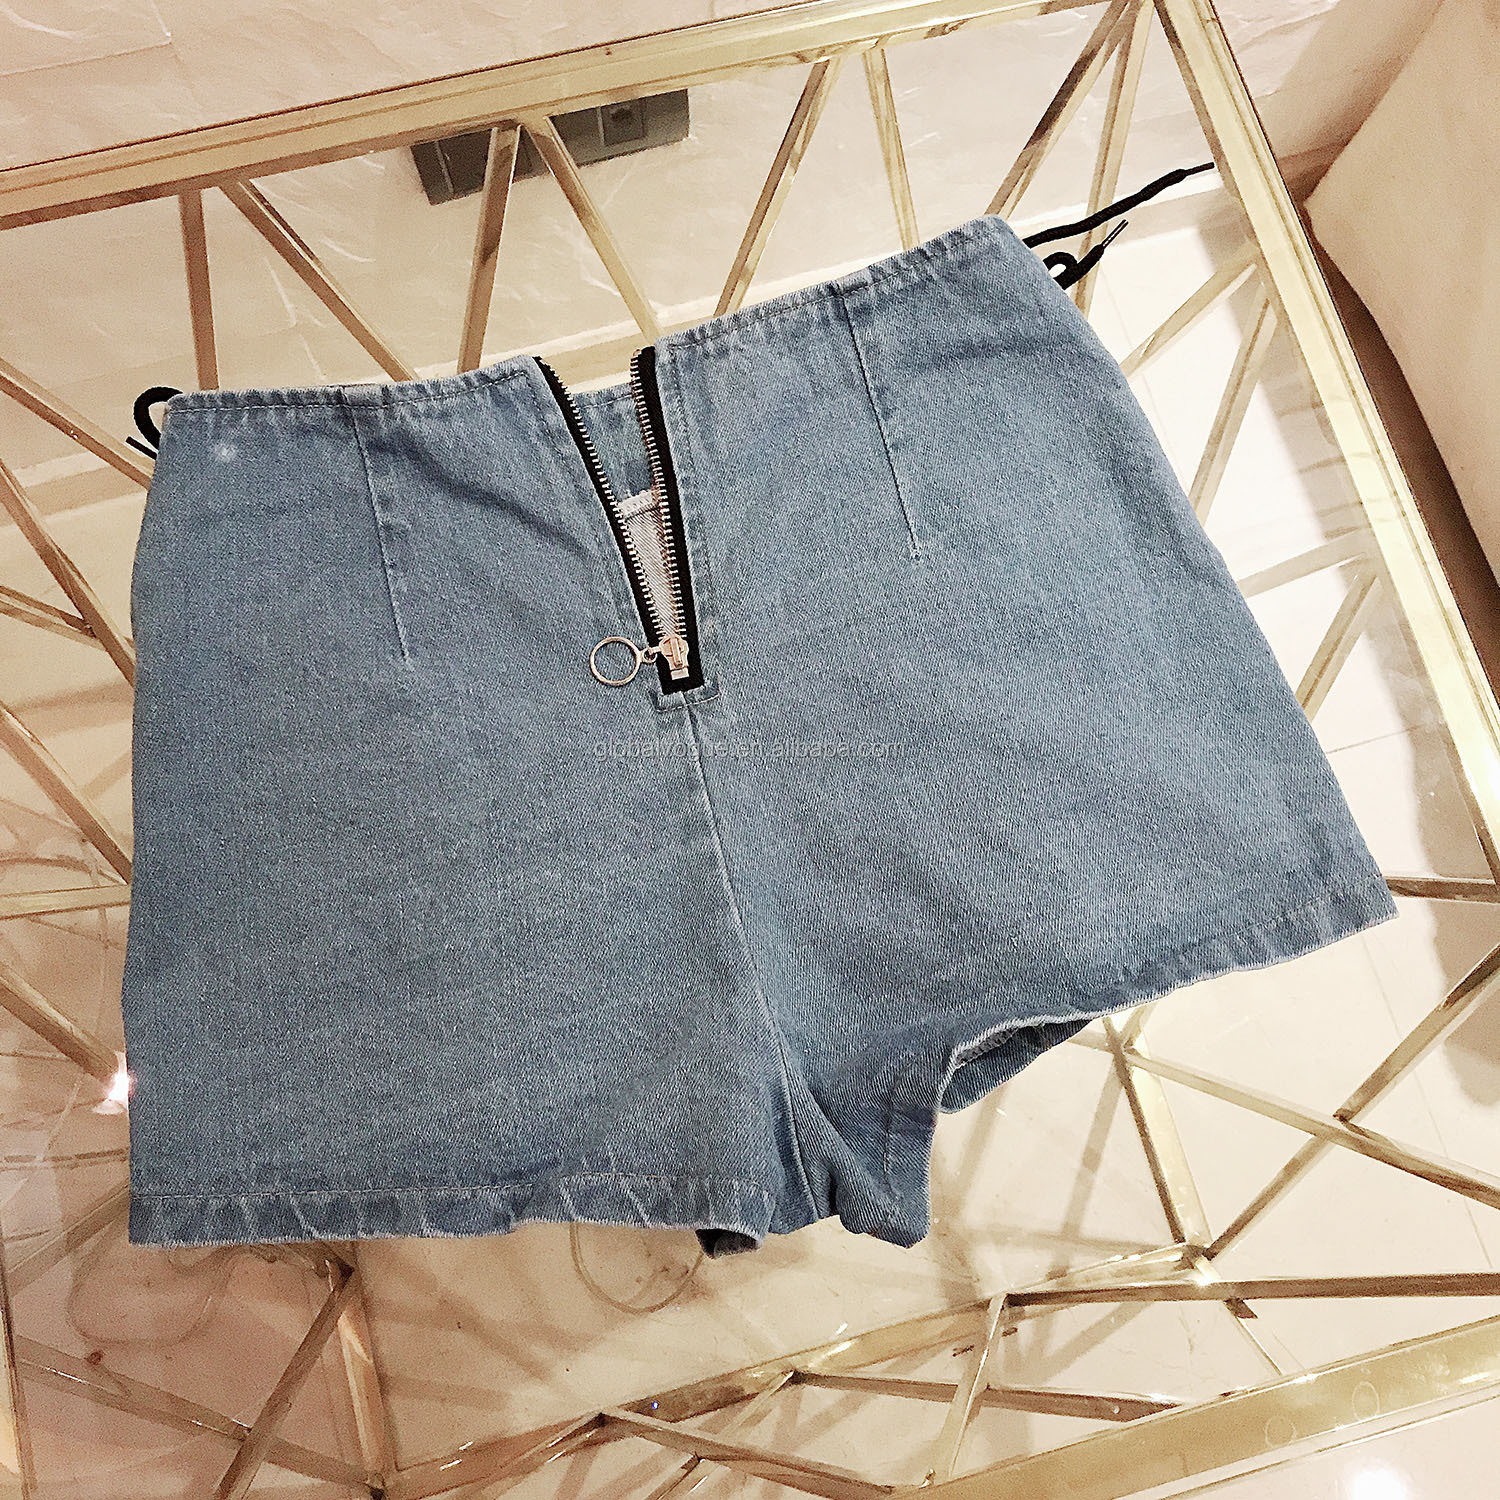 New European and American summer women's denim shorts sexy high waist hole